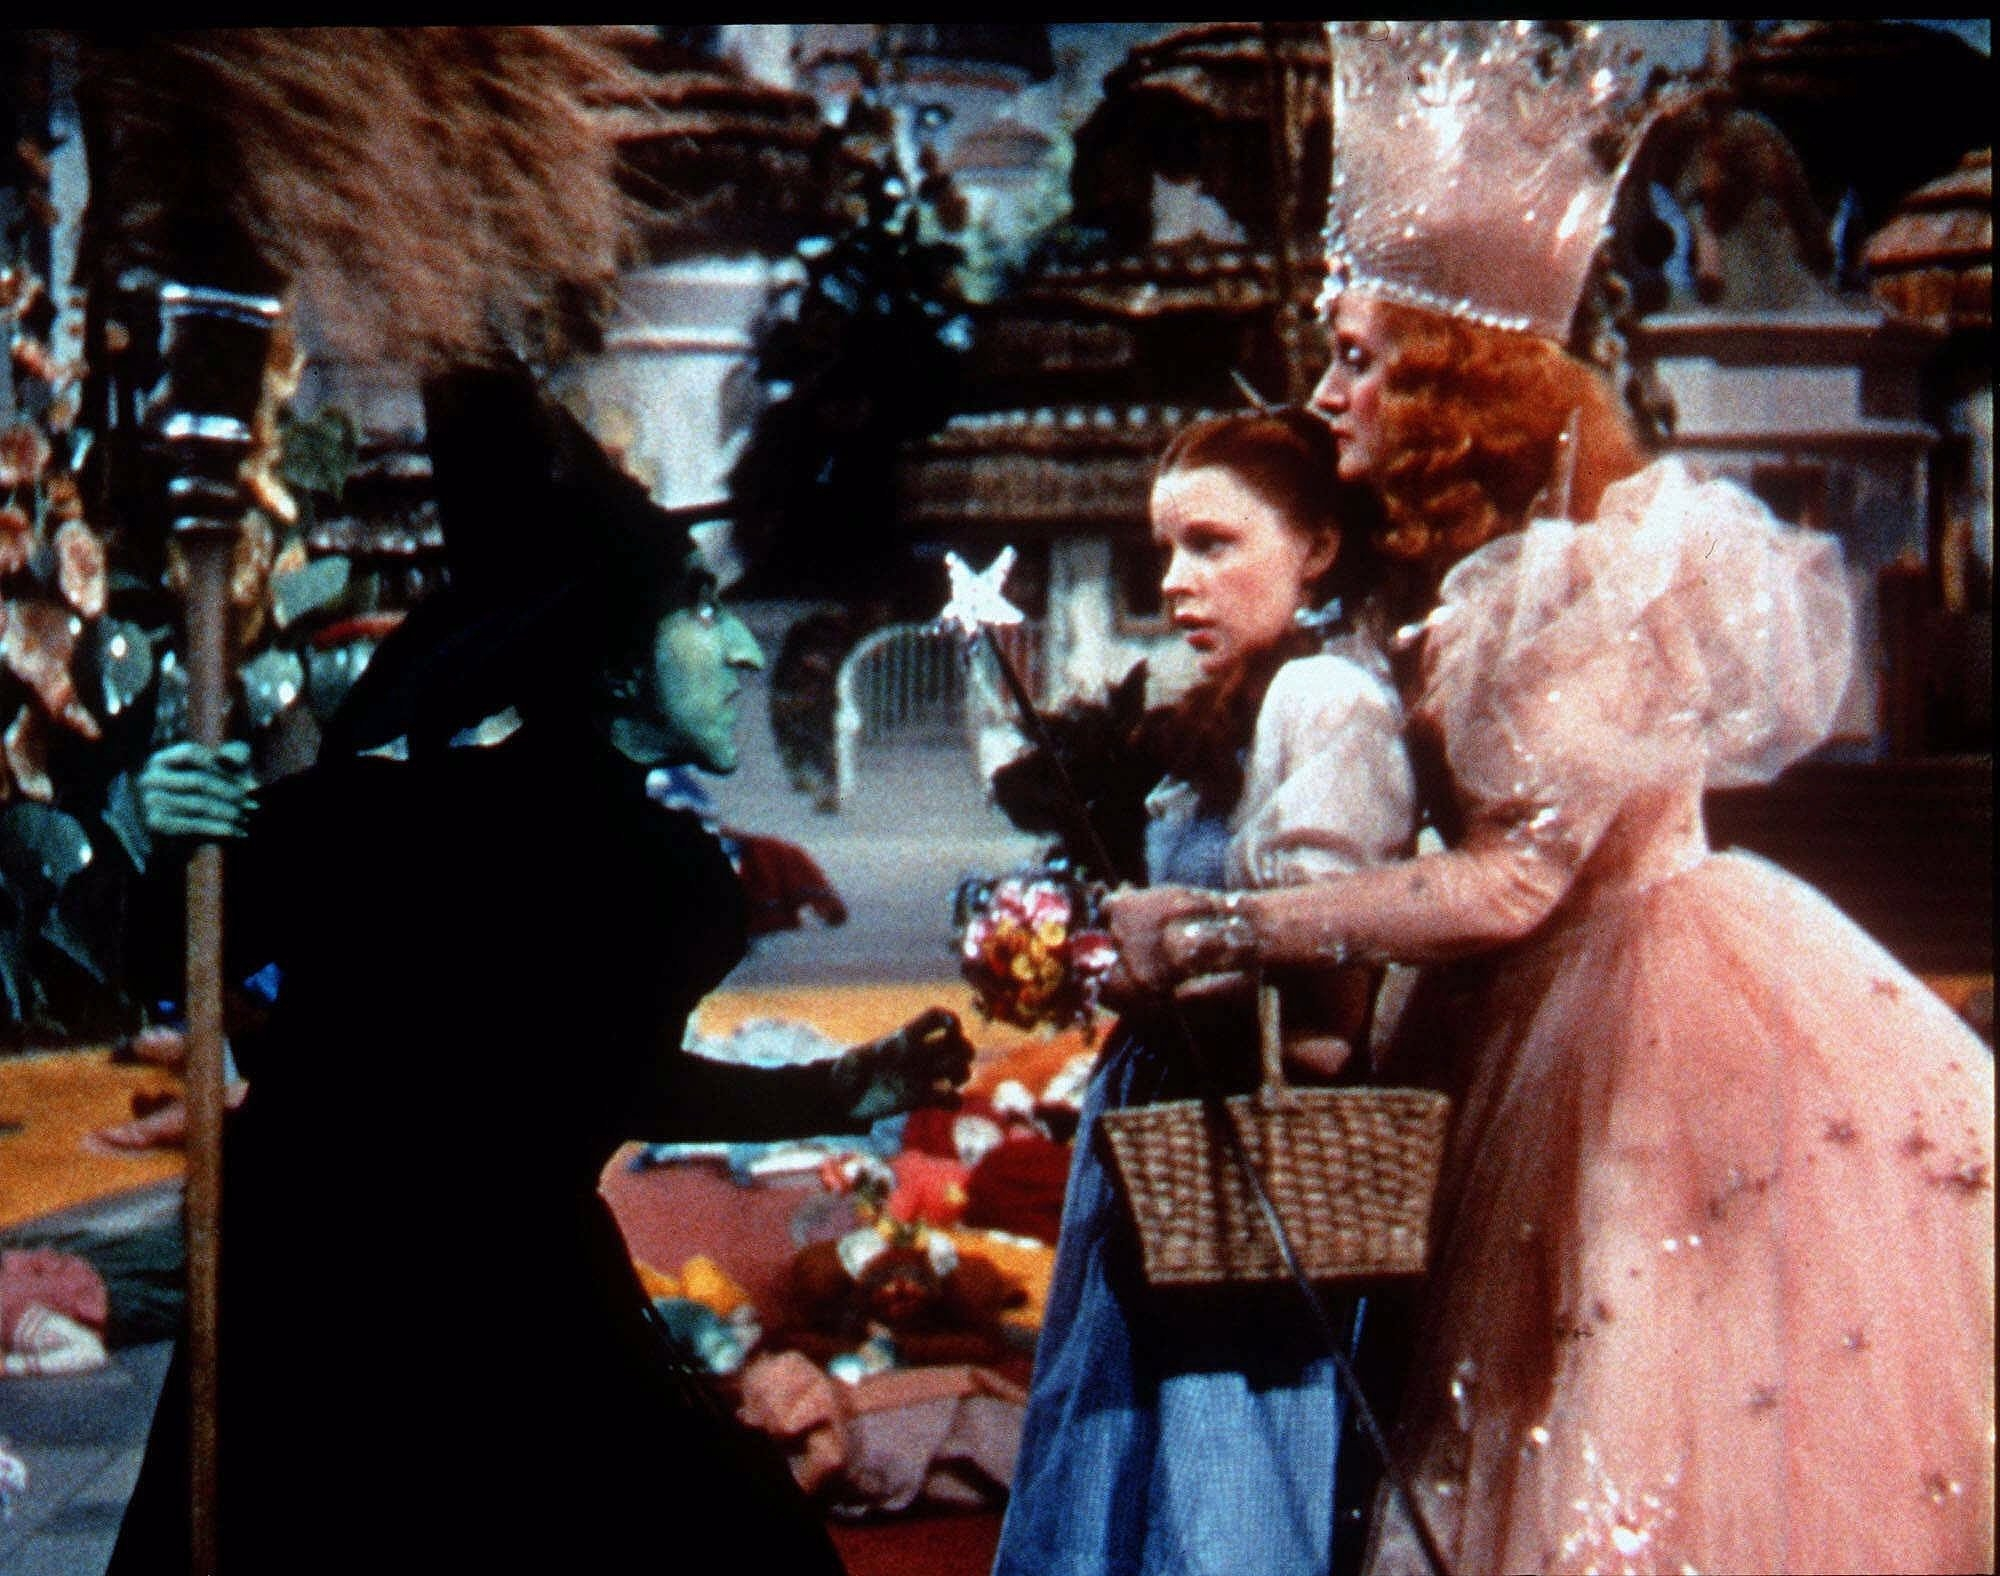 Behind the curtain wizard of oz - The Good Witch And The Bad Witch